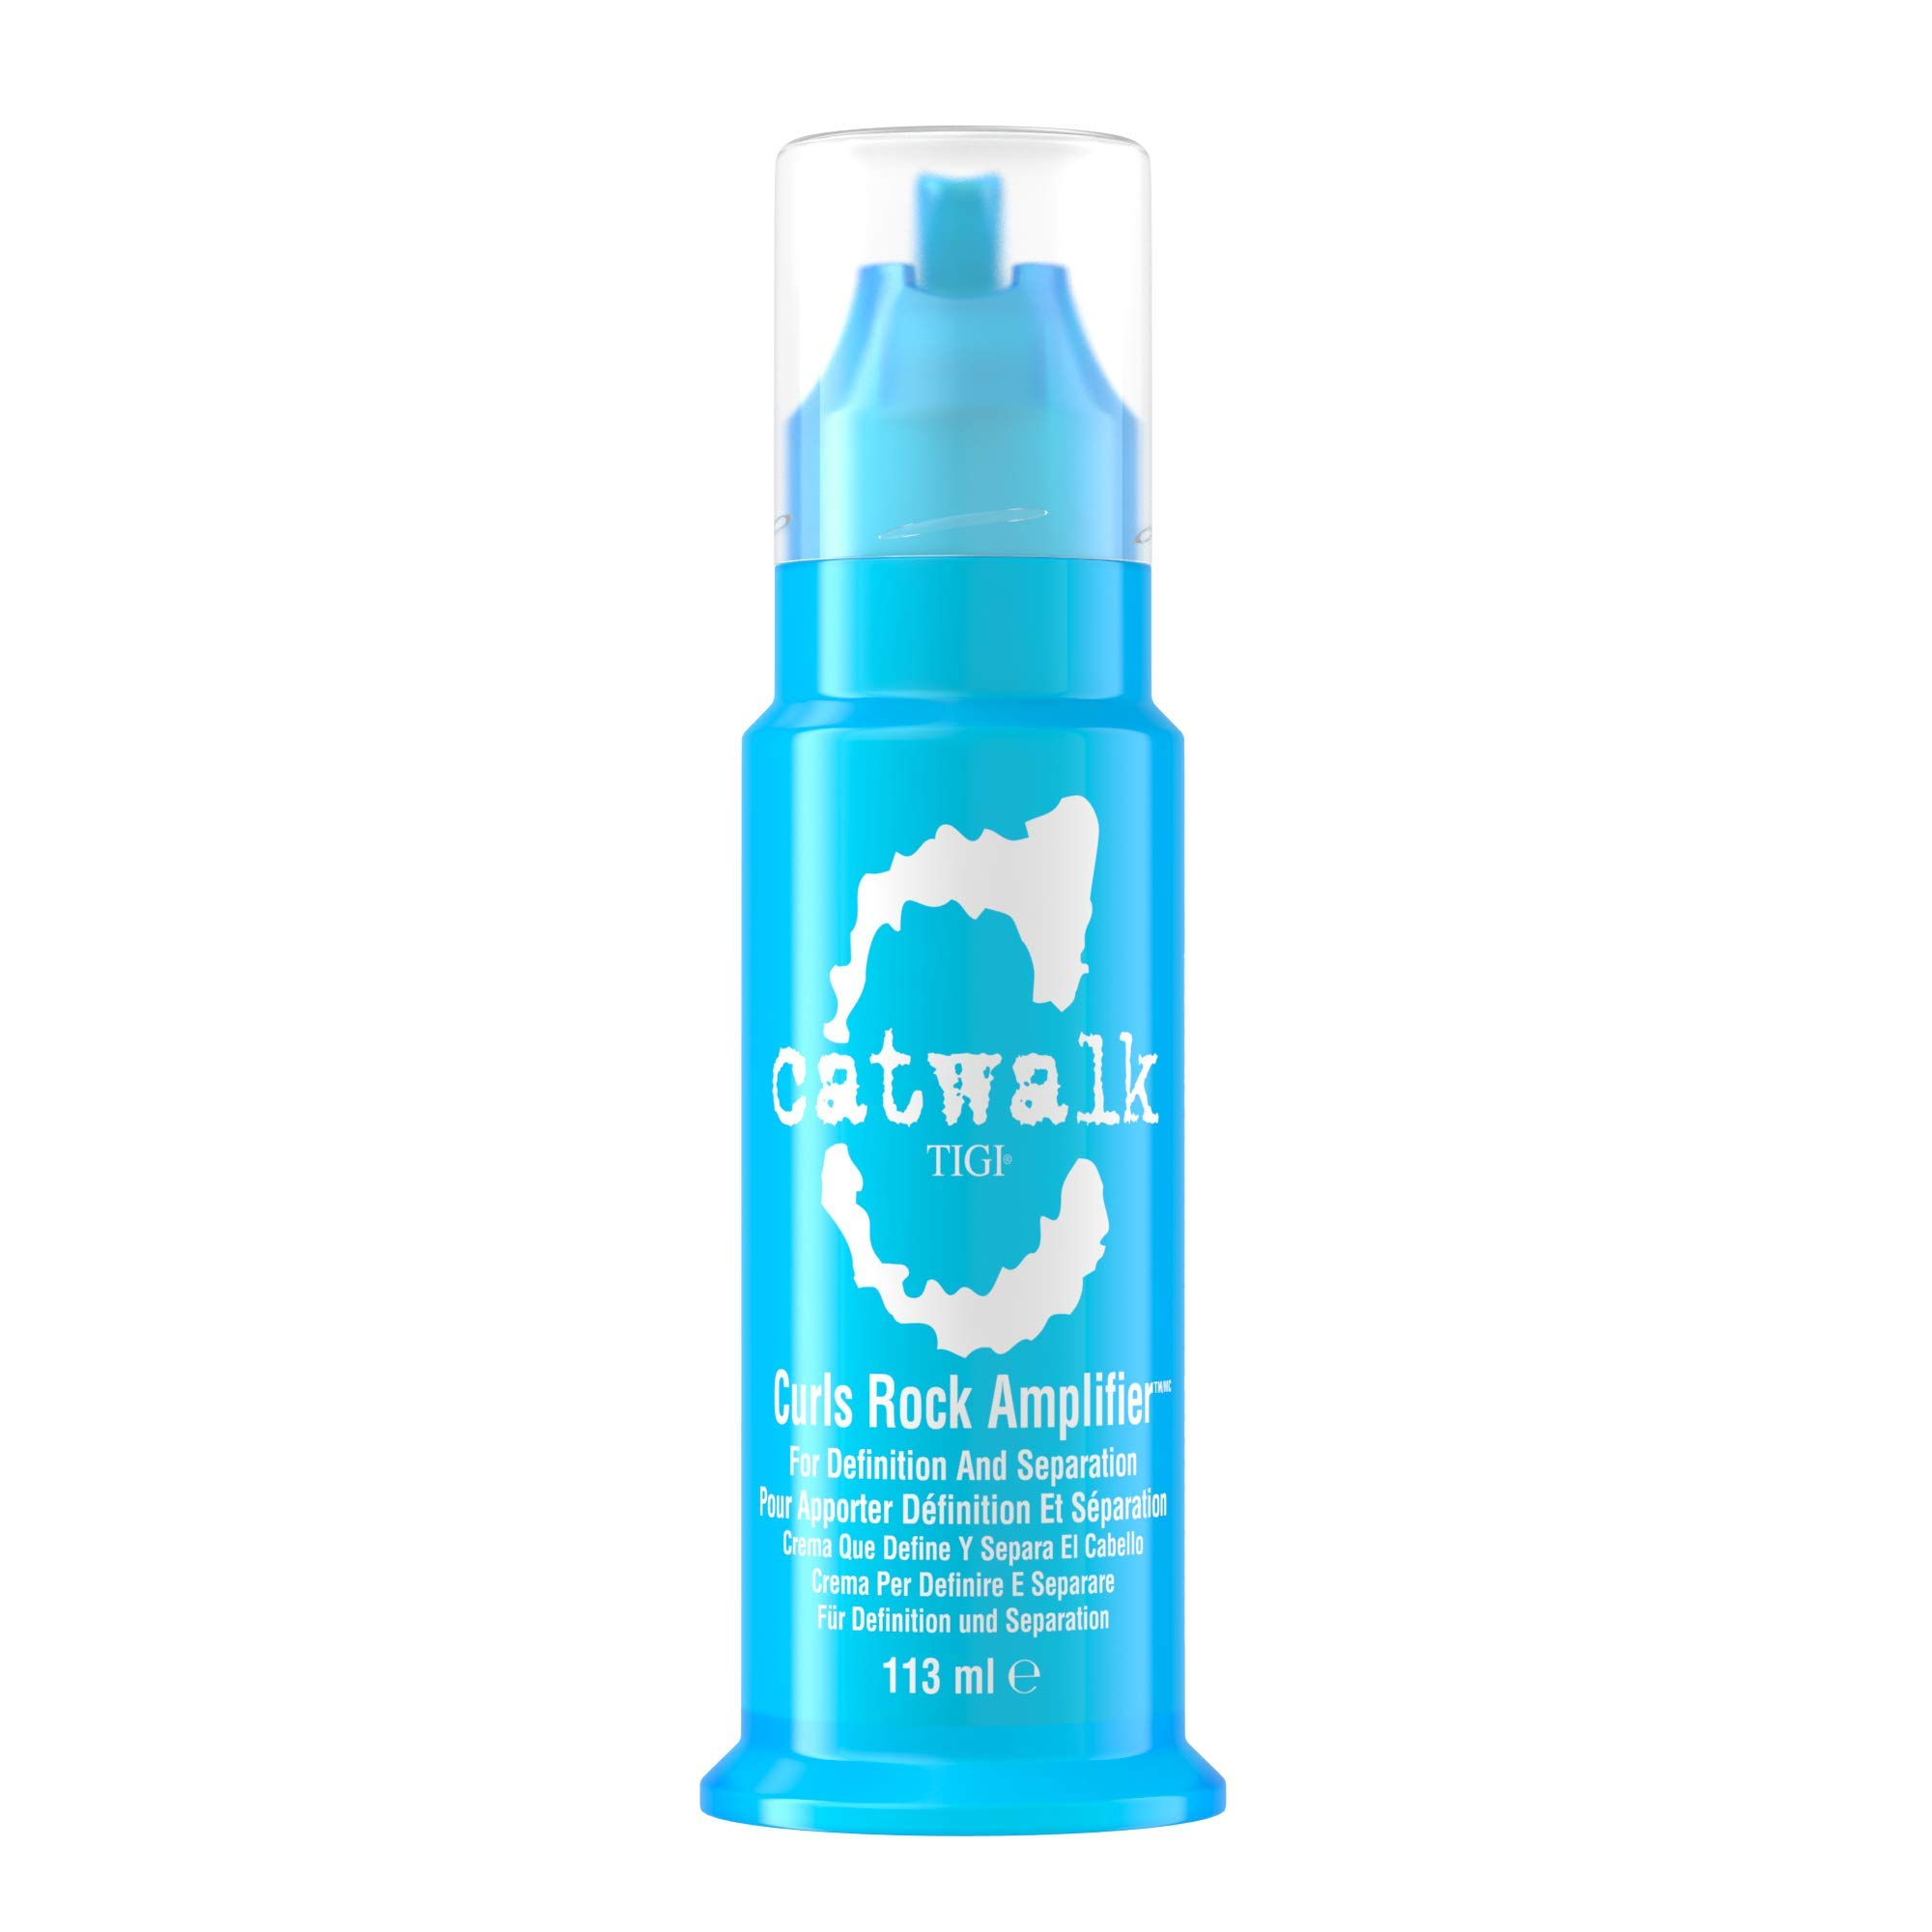 TIGI Catwalk BLUE Curls Rock Amplifier 3.8 oz